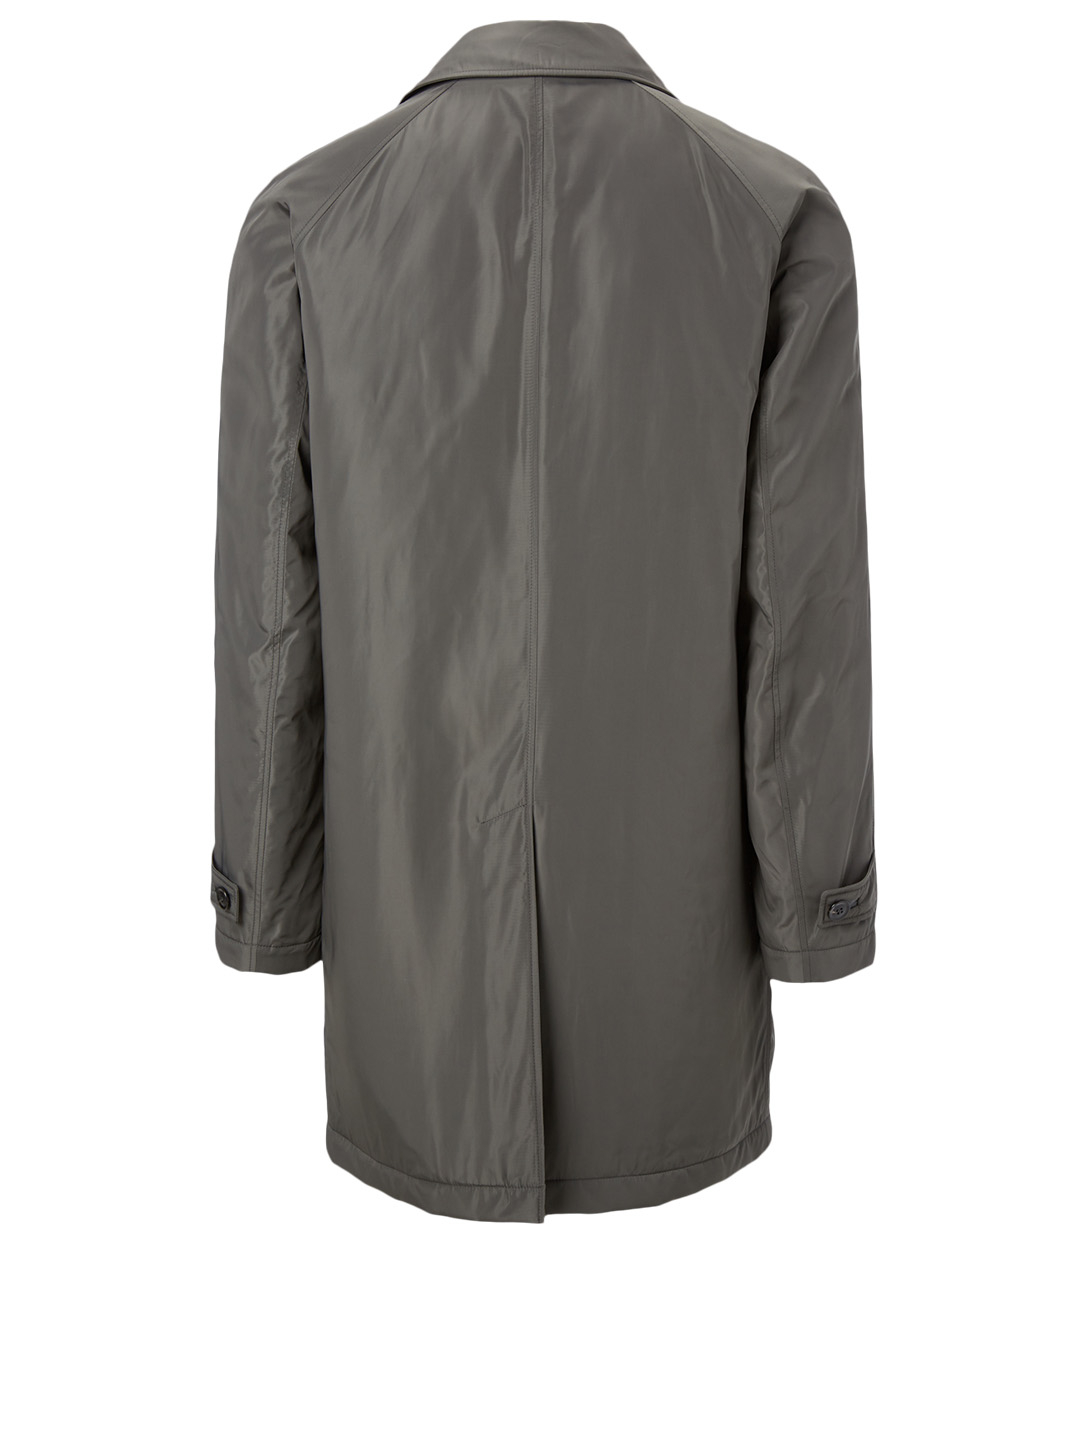 TOM FORD Ovatta Rain Coat Men's Grey